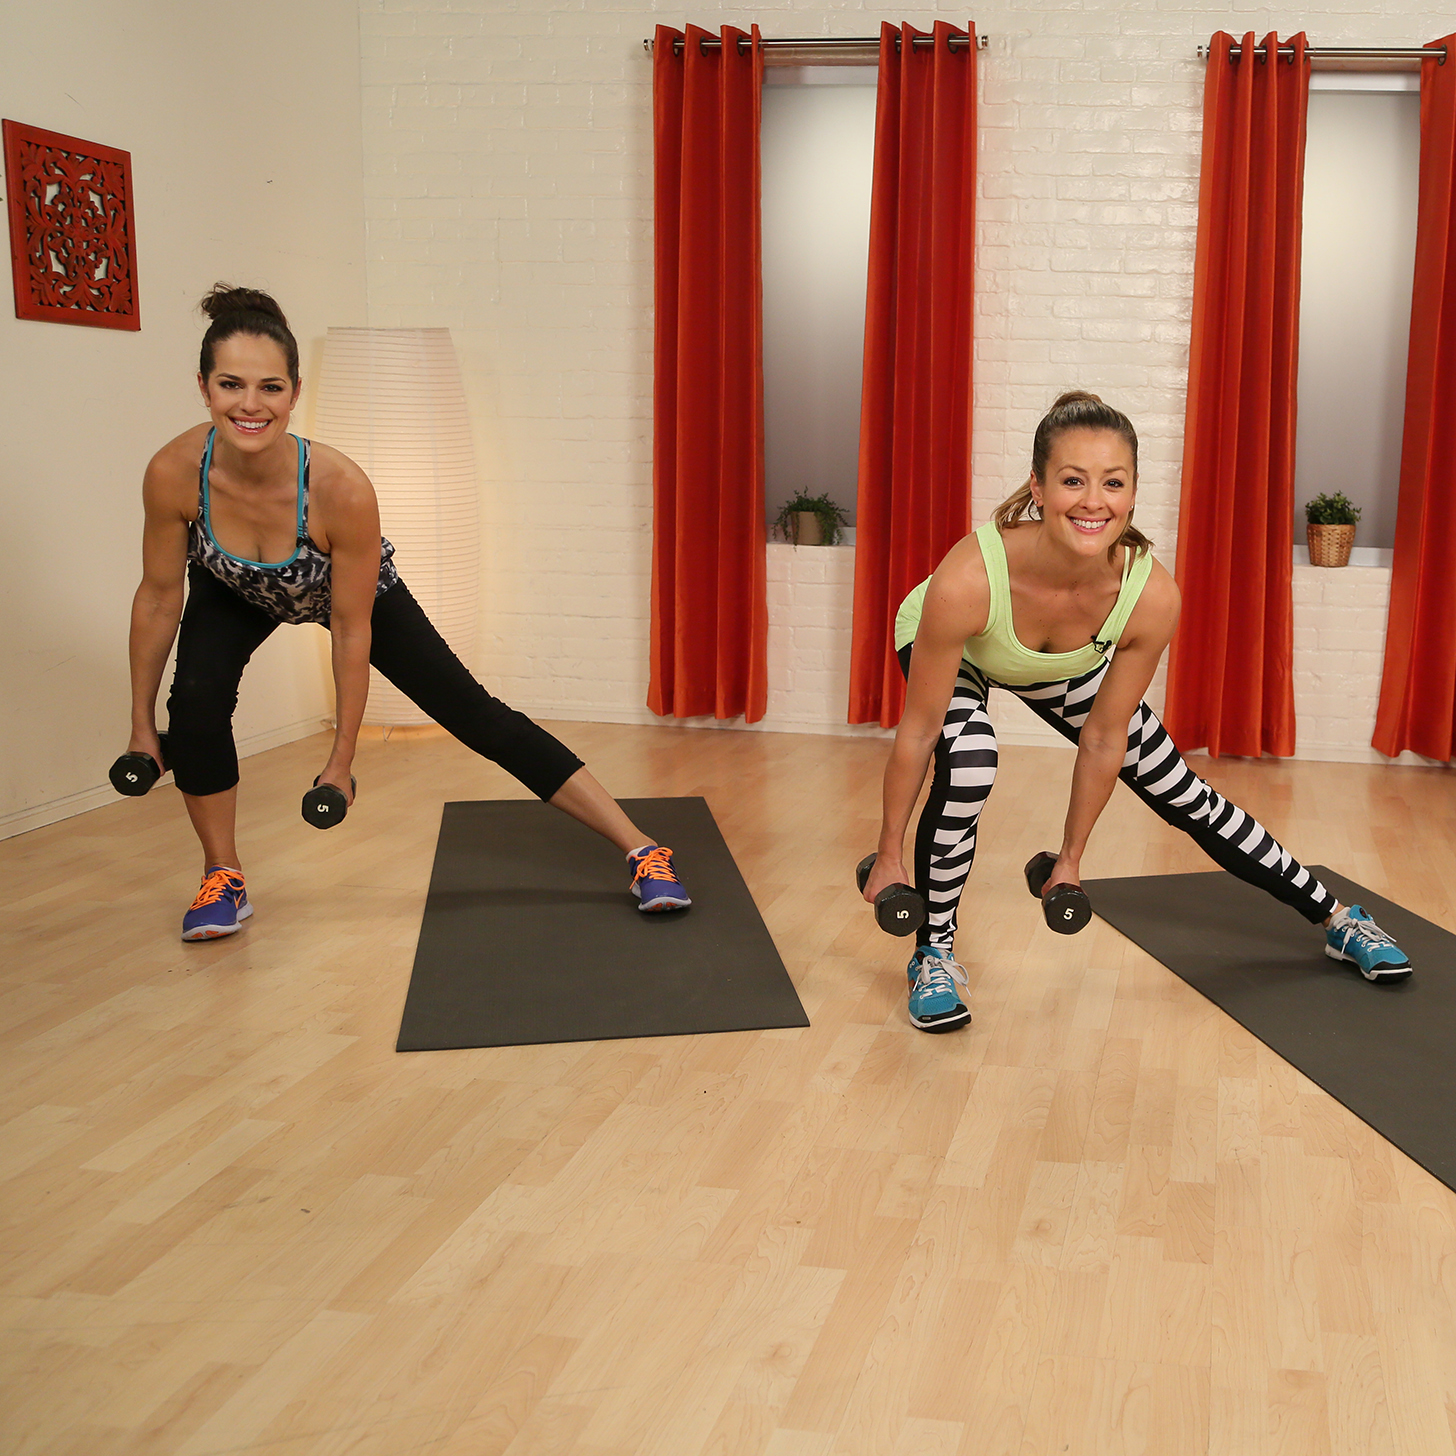 10-Minute Workout With Weights POPSUGAR Fitness